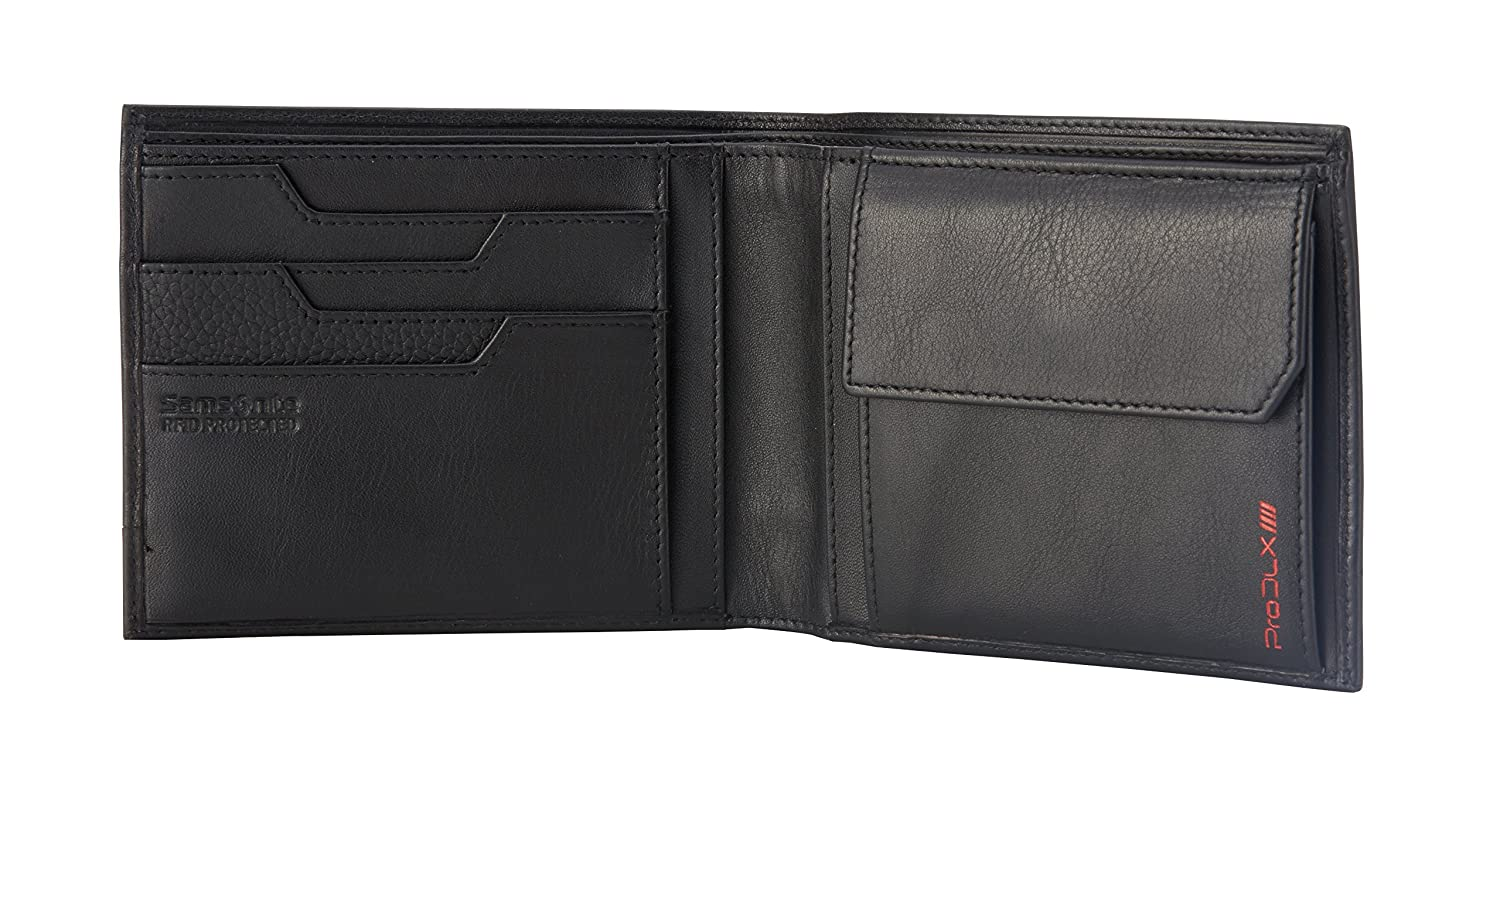 Samsonite Prod-DLX 4S RFID Billfold Holder Coin Pouch, 14 cm, Black 75424/1041